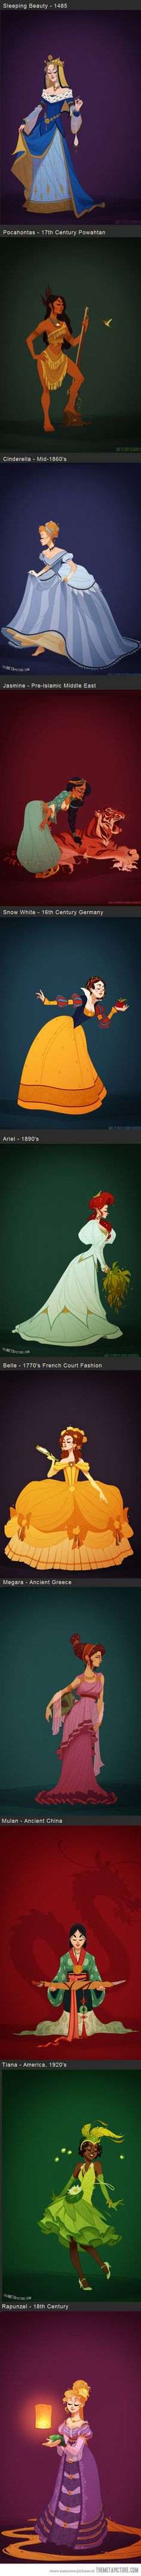 Disney Princesses in accurate period costume... - I wouldn't mind a few of these framed on my wall.